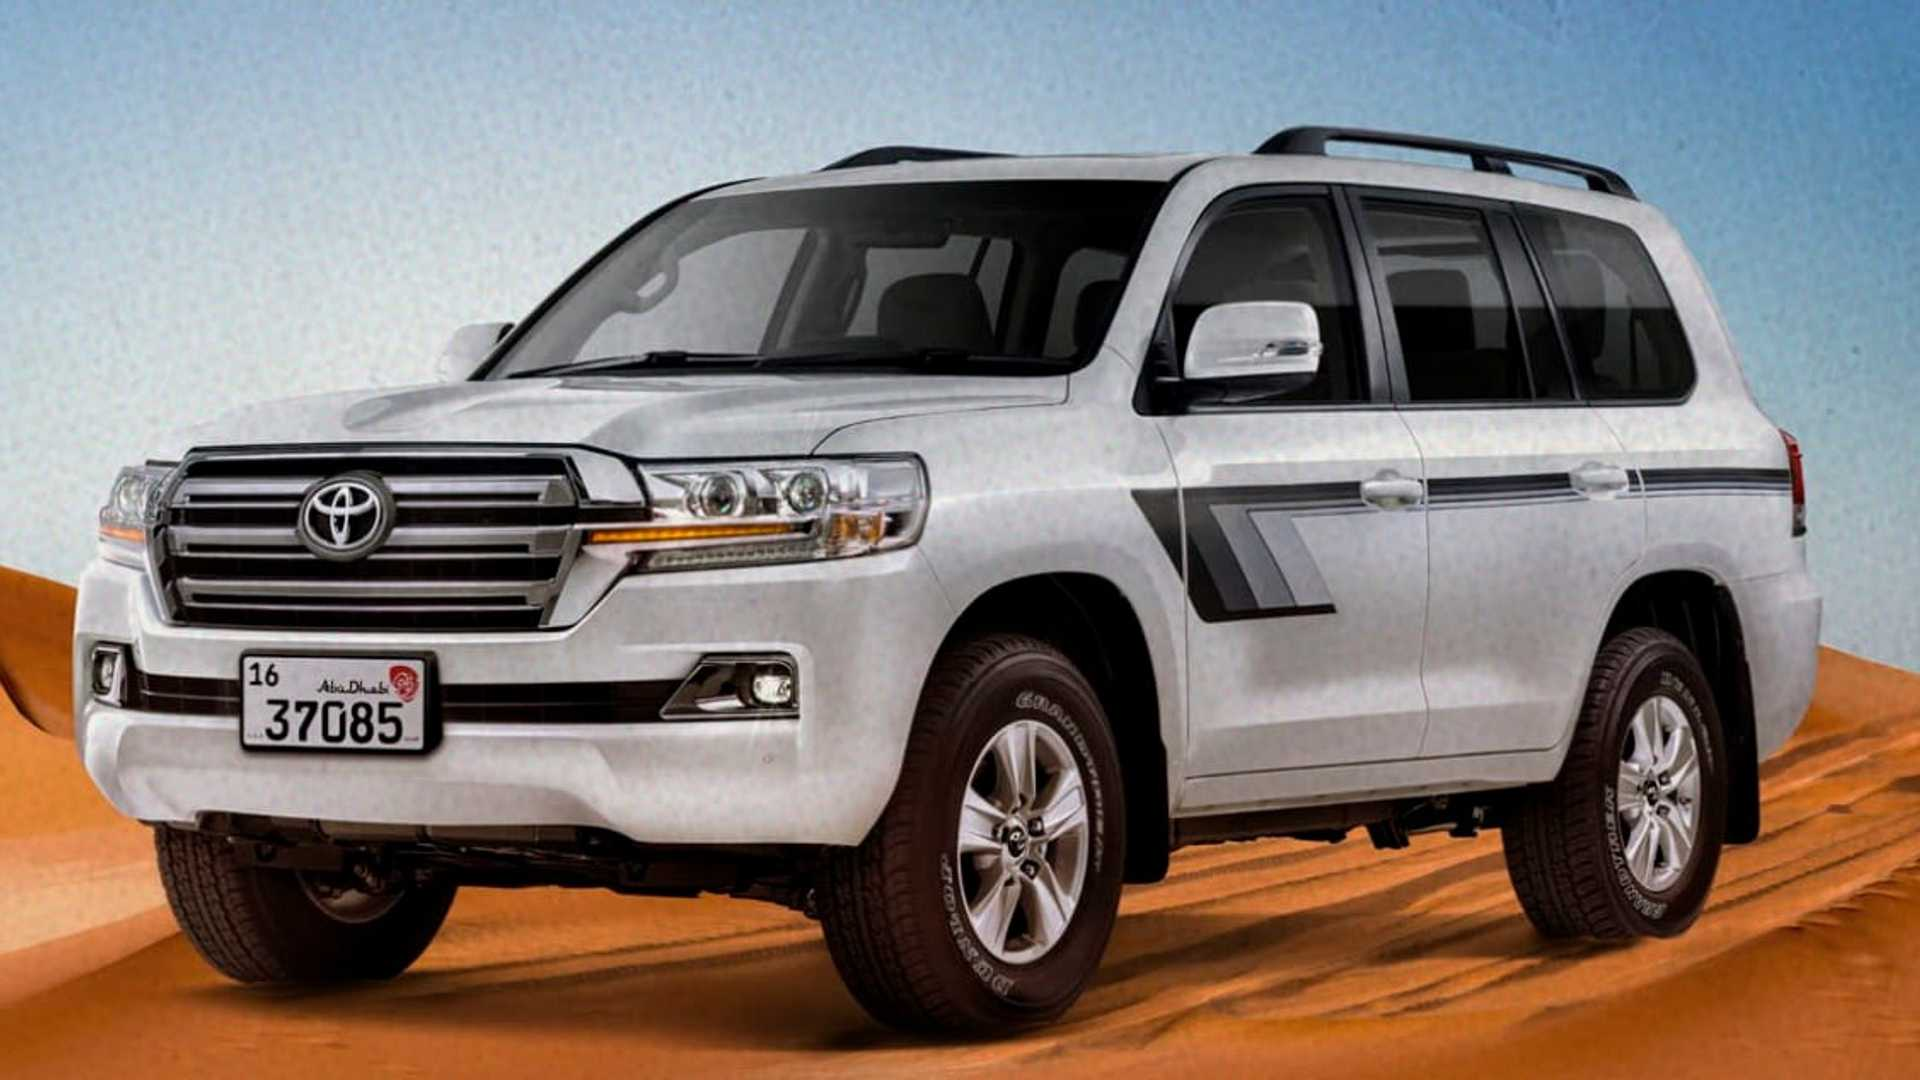 Toyota-Land-Cruiser-Heritage-Edition-for-UAE-1